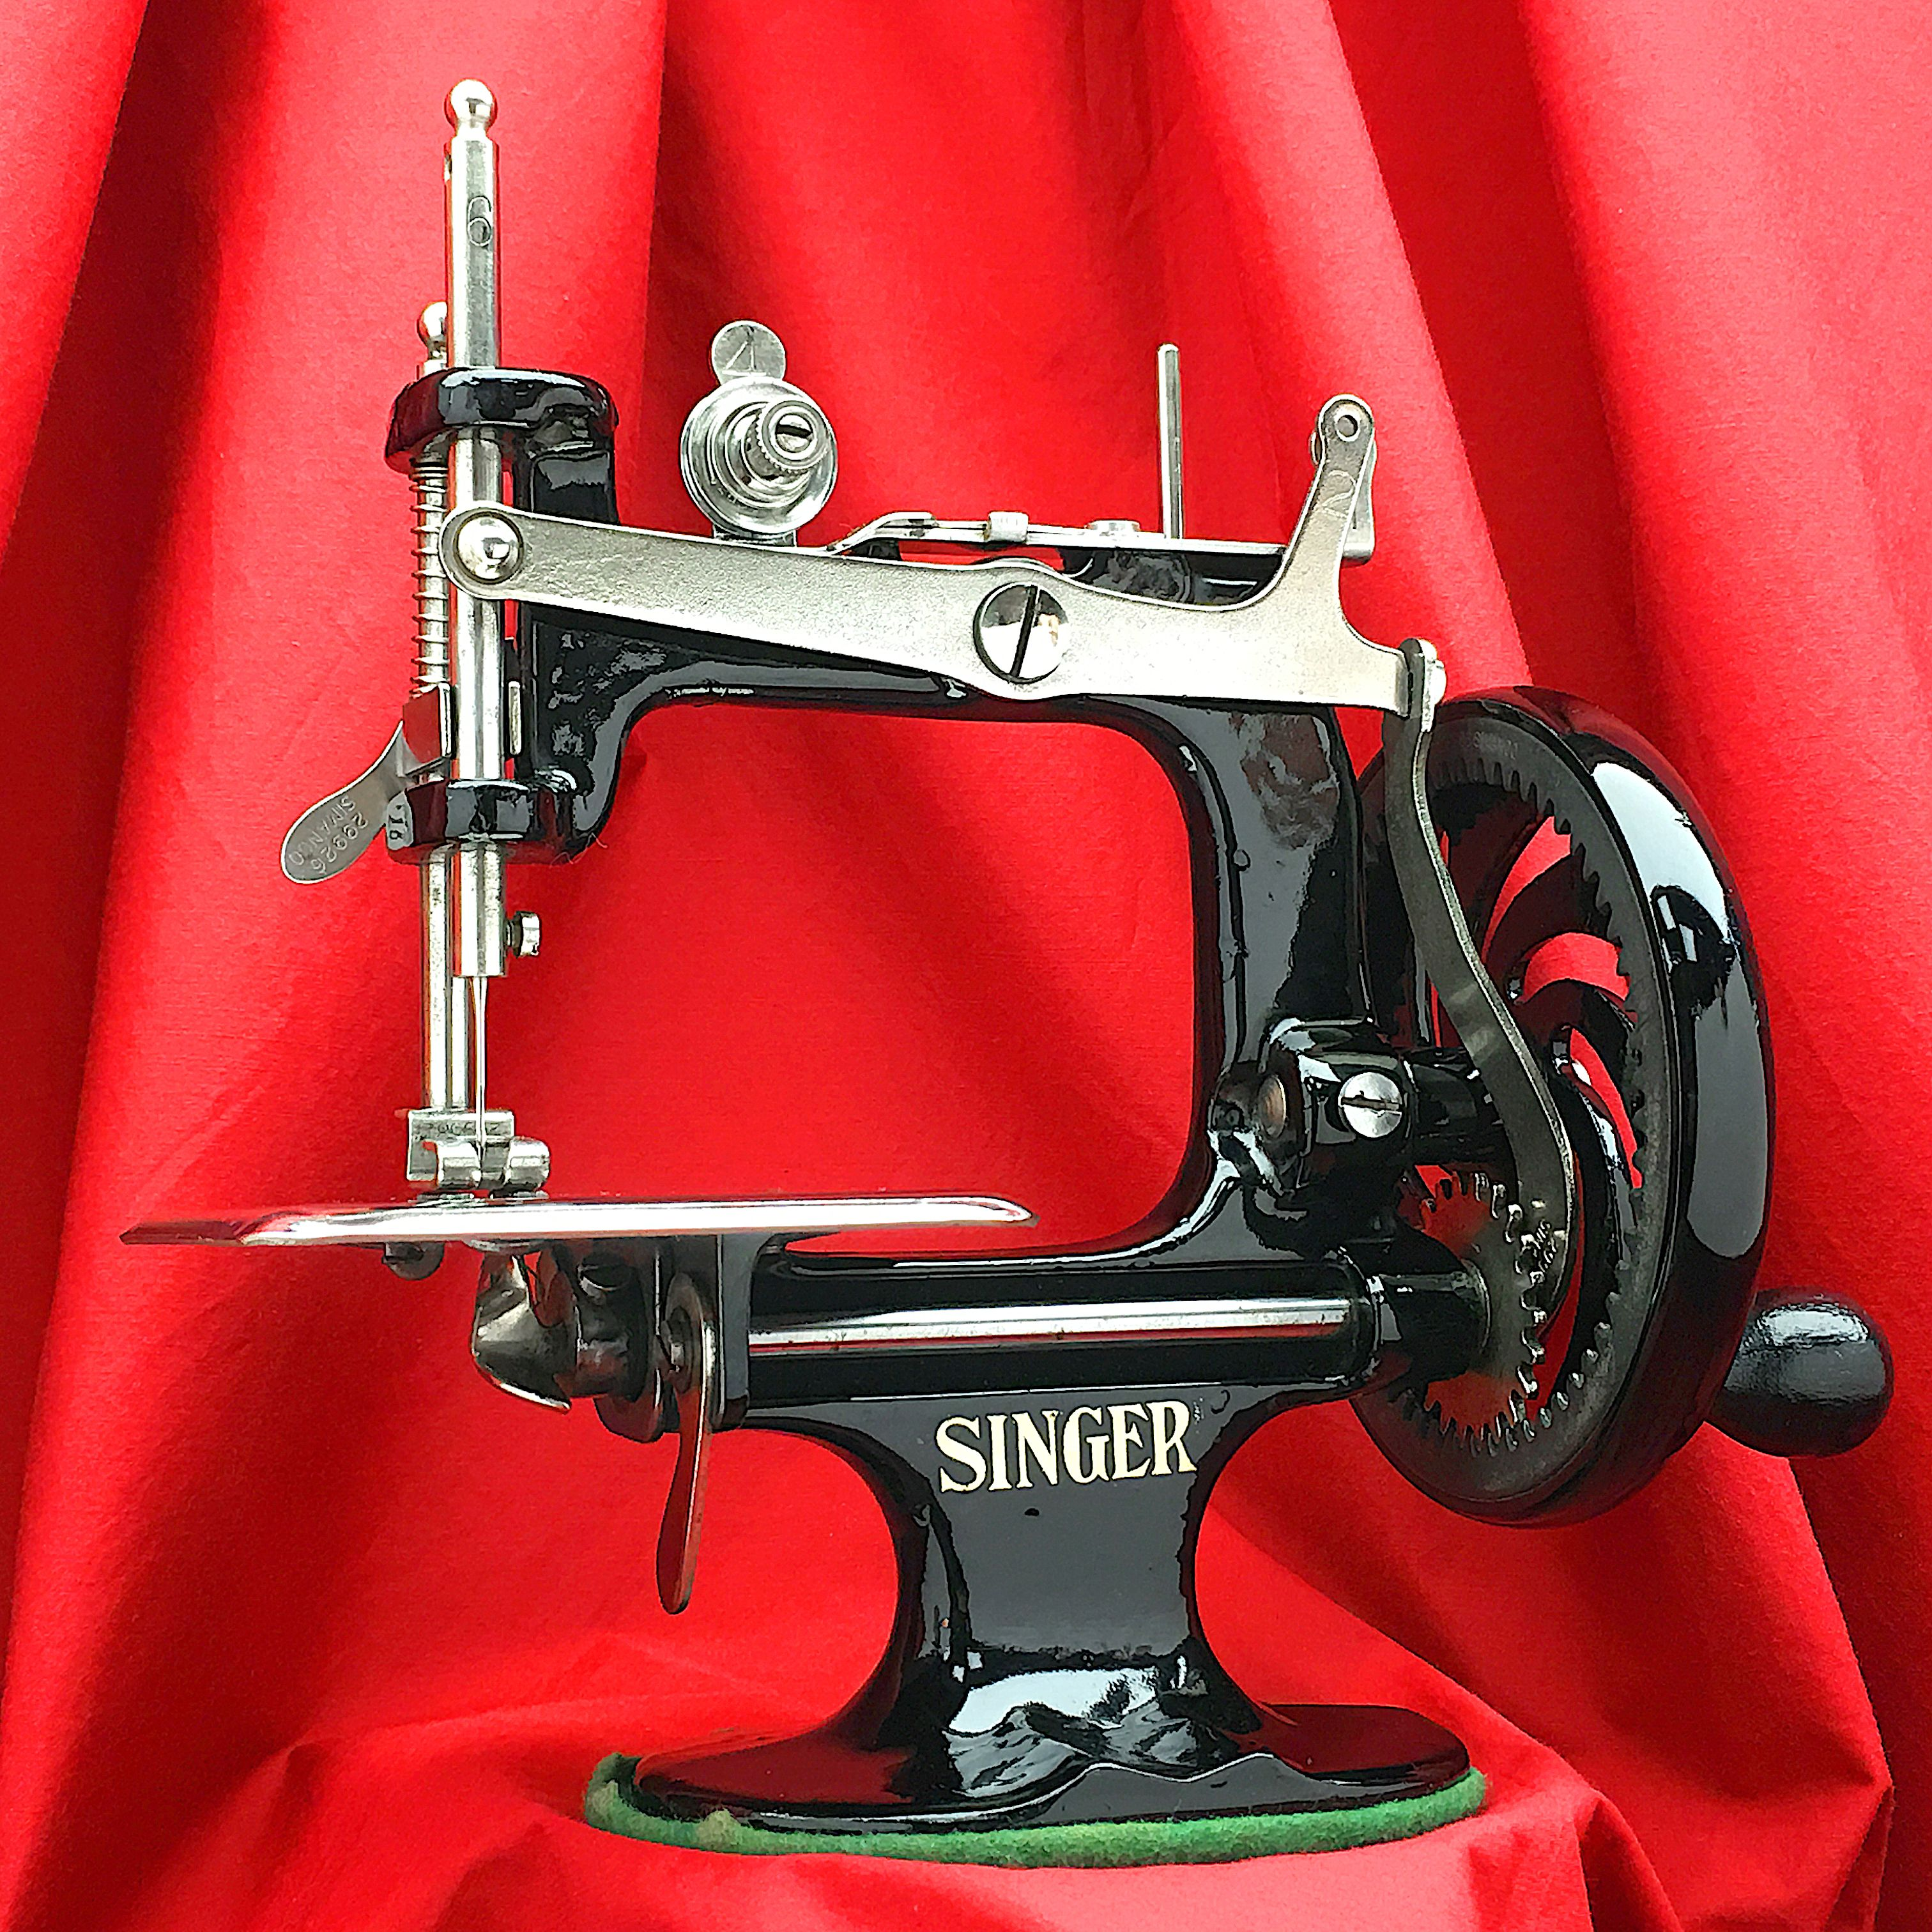 Singer Sewhandy 20 1920 1930 S Child Toy Sewing Machine Etsy Sewing Machine Sewing Toys Machine Photo